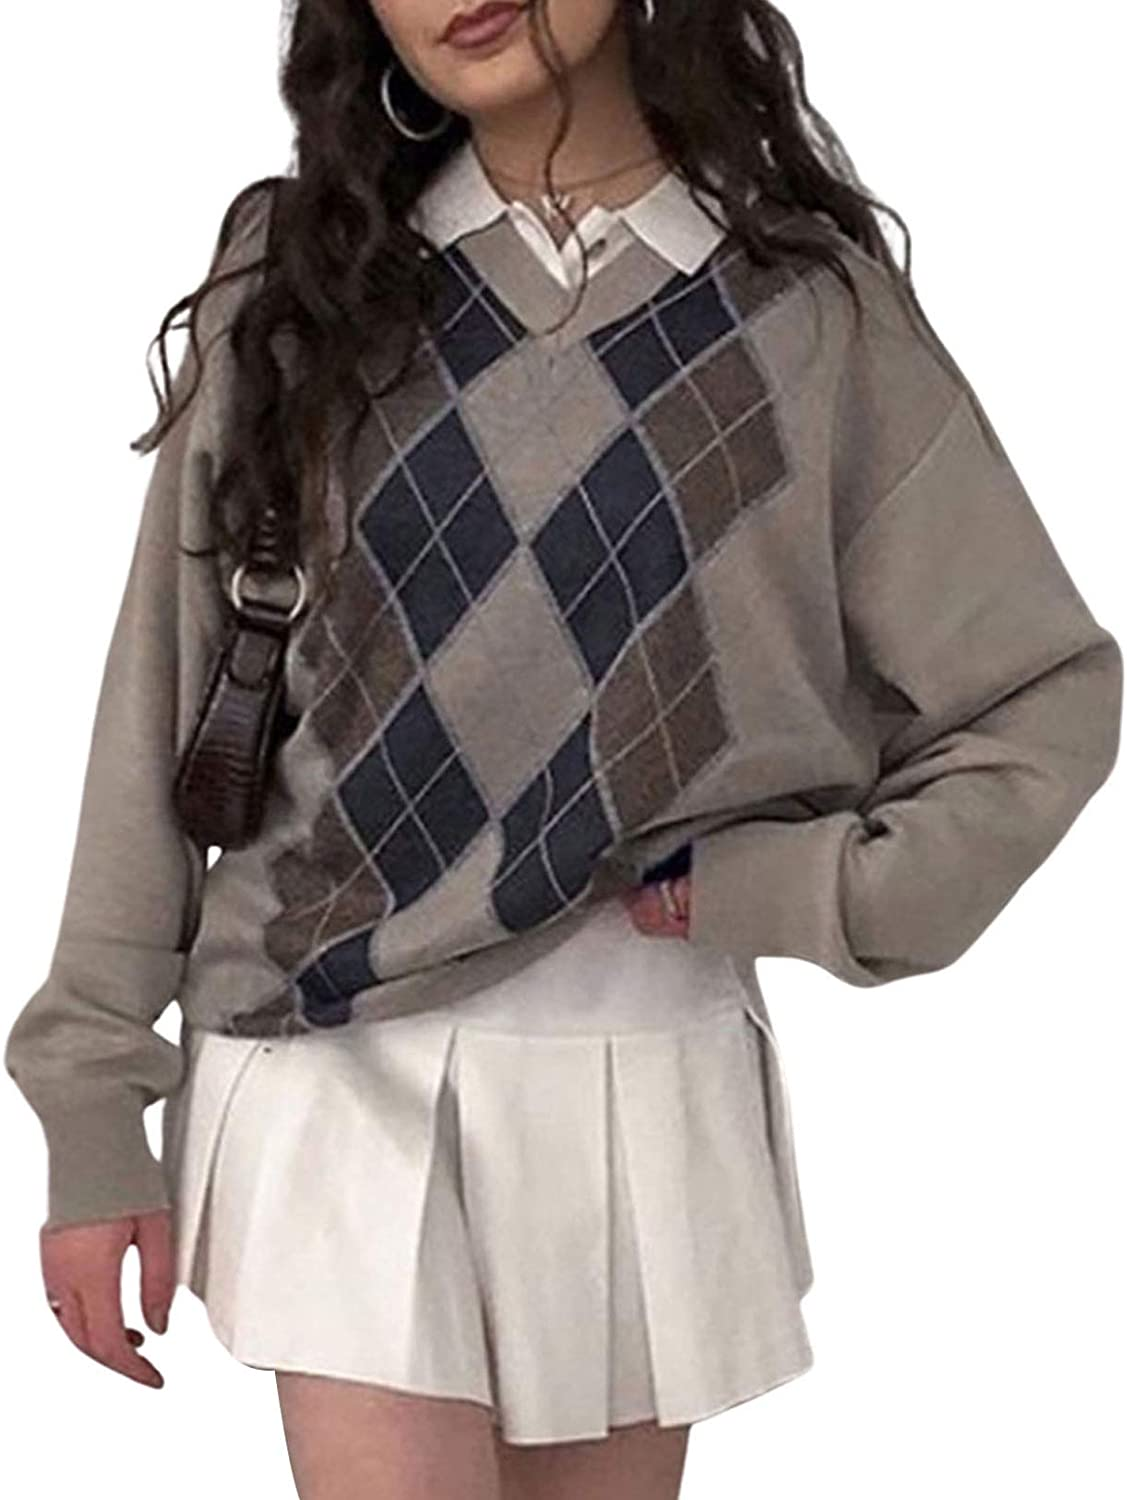 Women Argyle Plaid Sweater Pullover Long Sleeve V Neck Preppy Y2K E-Girl Knitwear Top Cute Autumn Spring Winter Clothes